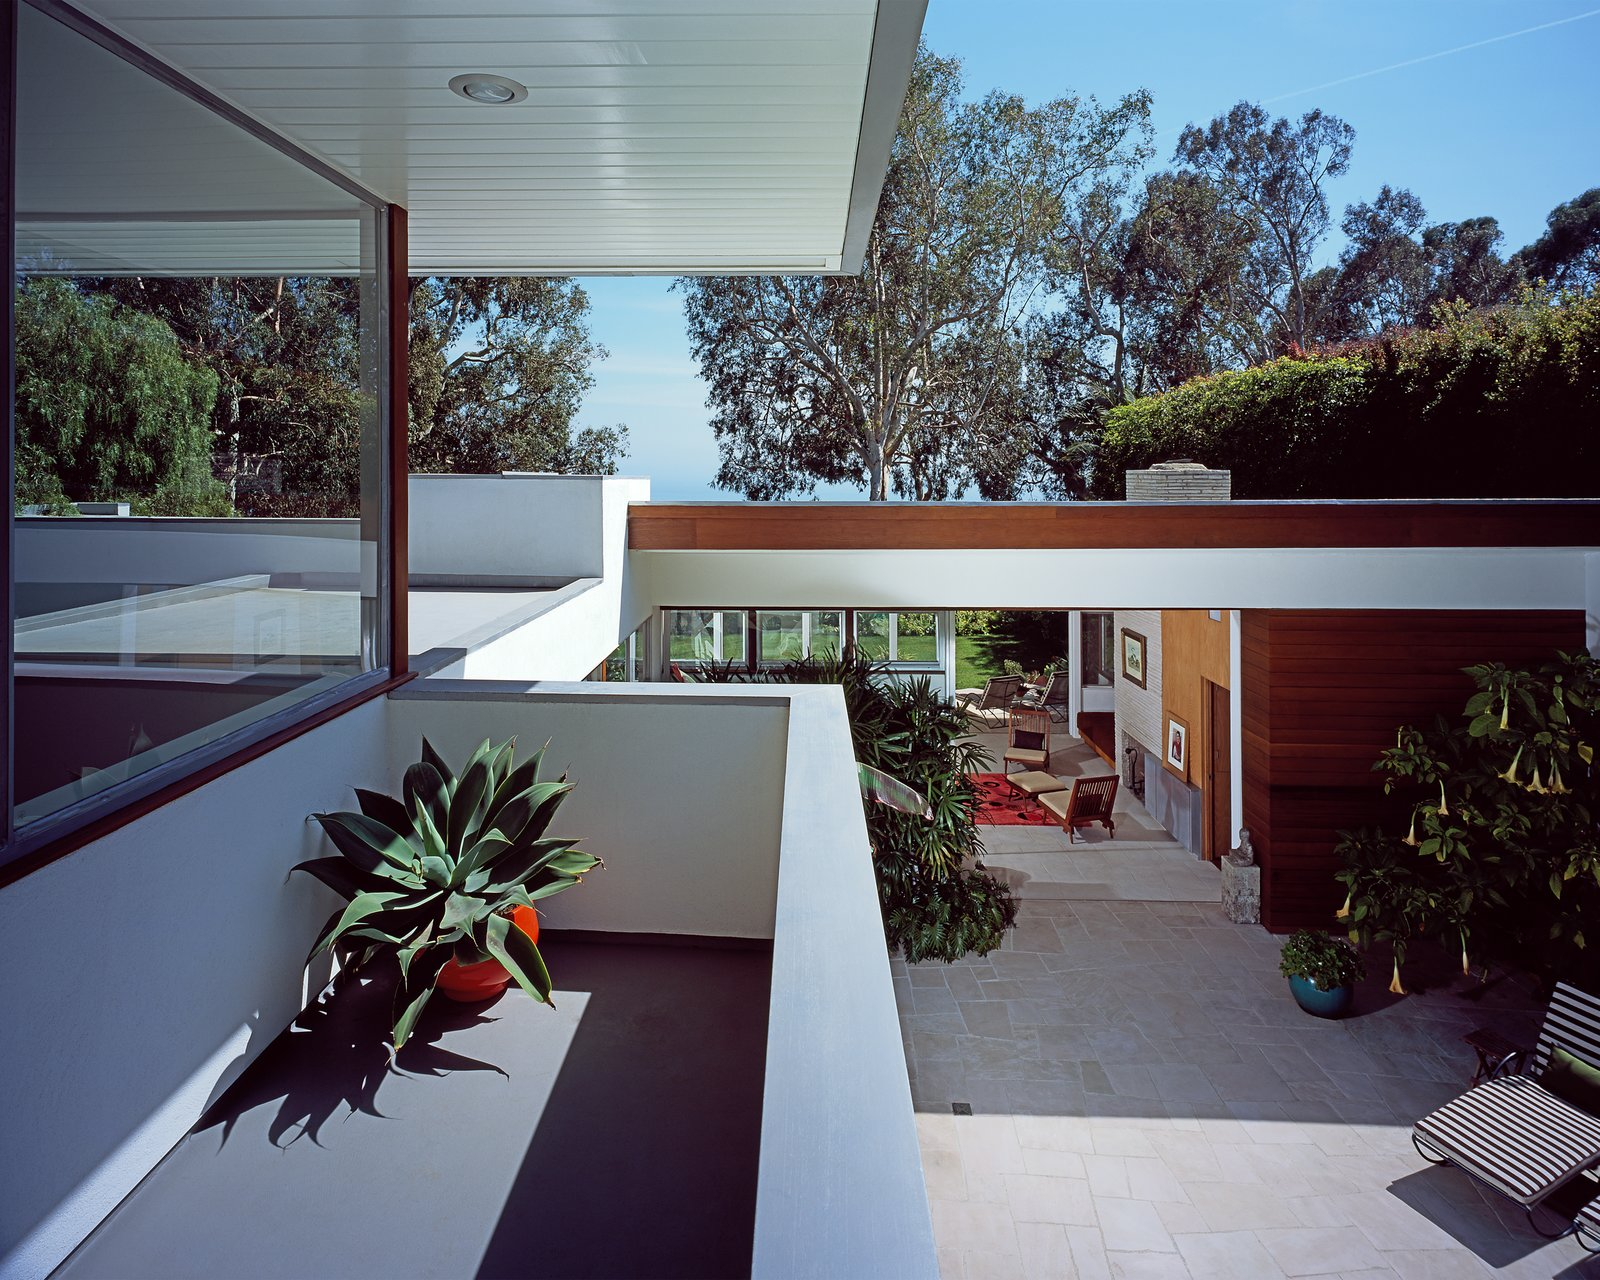 """The original house opens completely to the repaved pool deck, which leads to the upstairs addition. """"Working on the house had only increased our respect for Neutra, whom we had always admired greatly,"""" says Grueneisen. """"So we knew that any major additions would have to be respectful to his design.""""  Photo 3 of 6 in A Neutra Renovation in Los Angeles"""